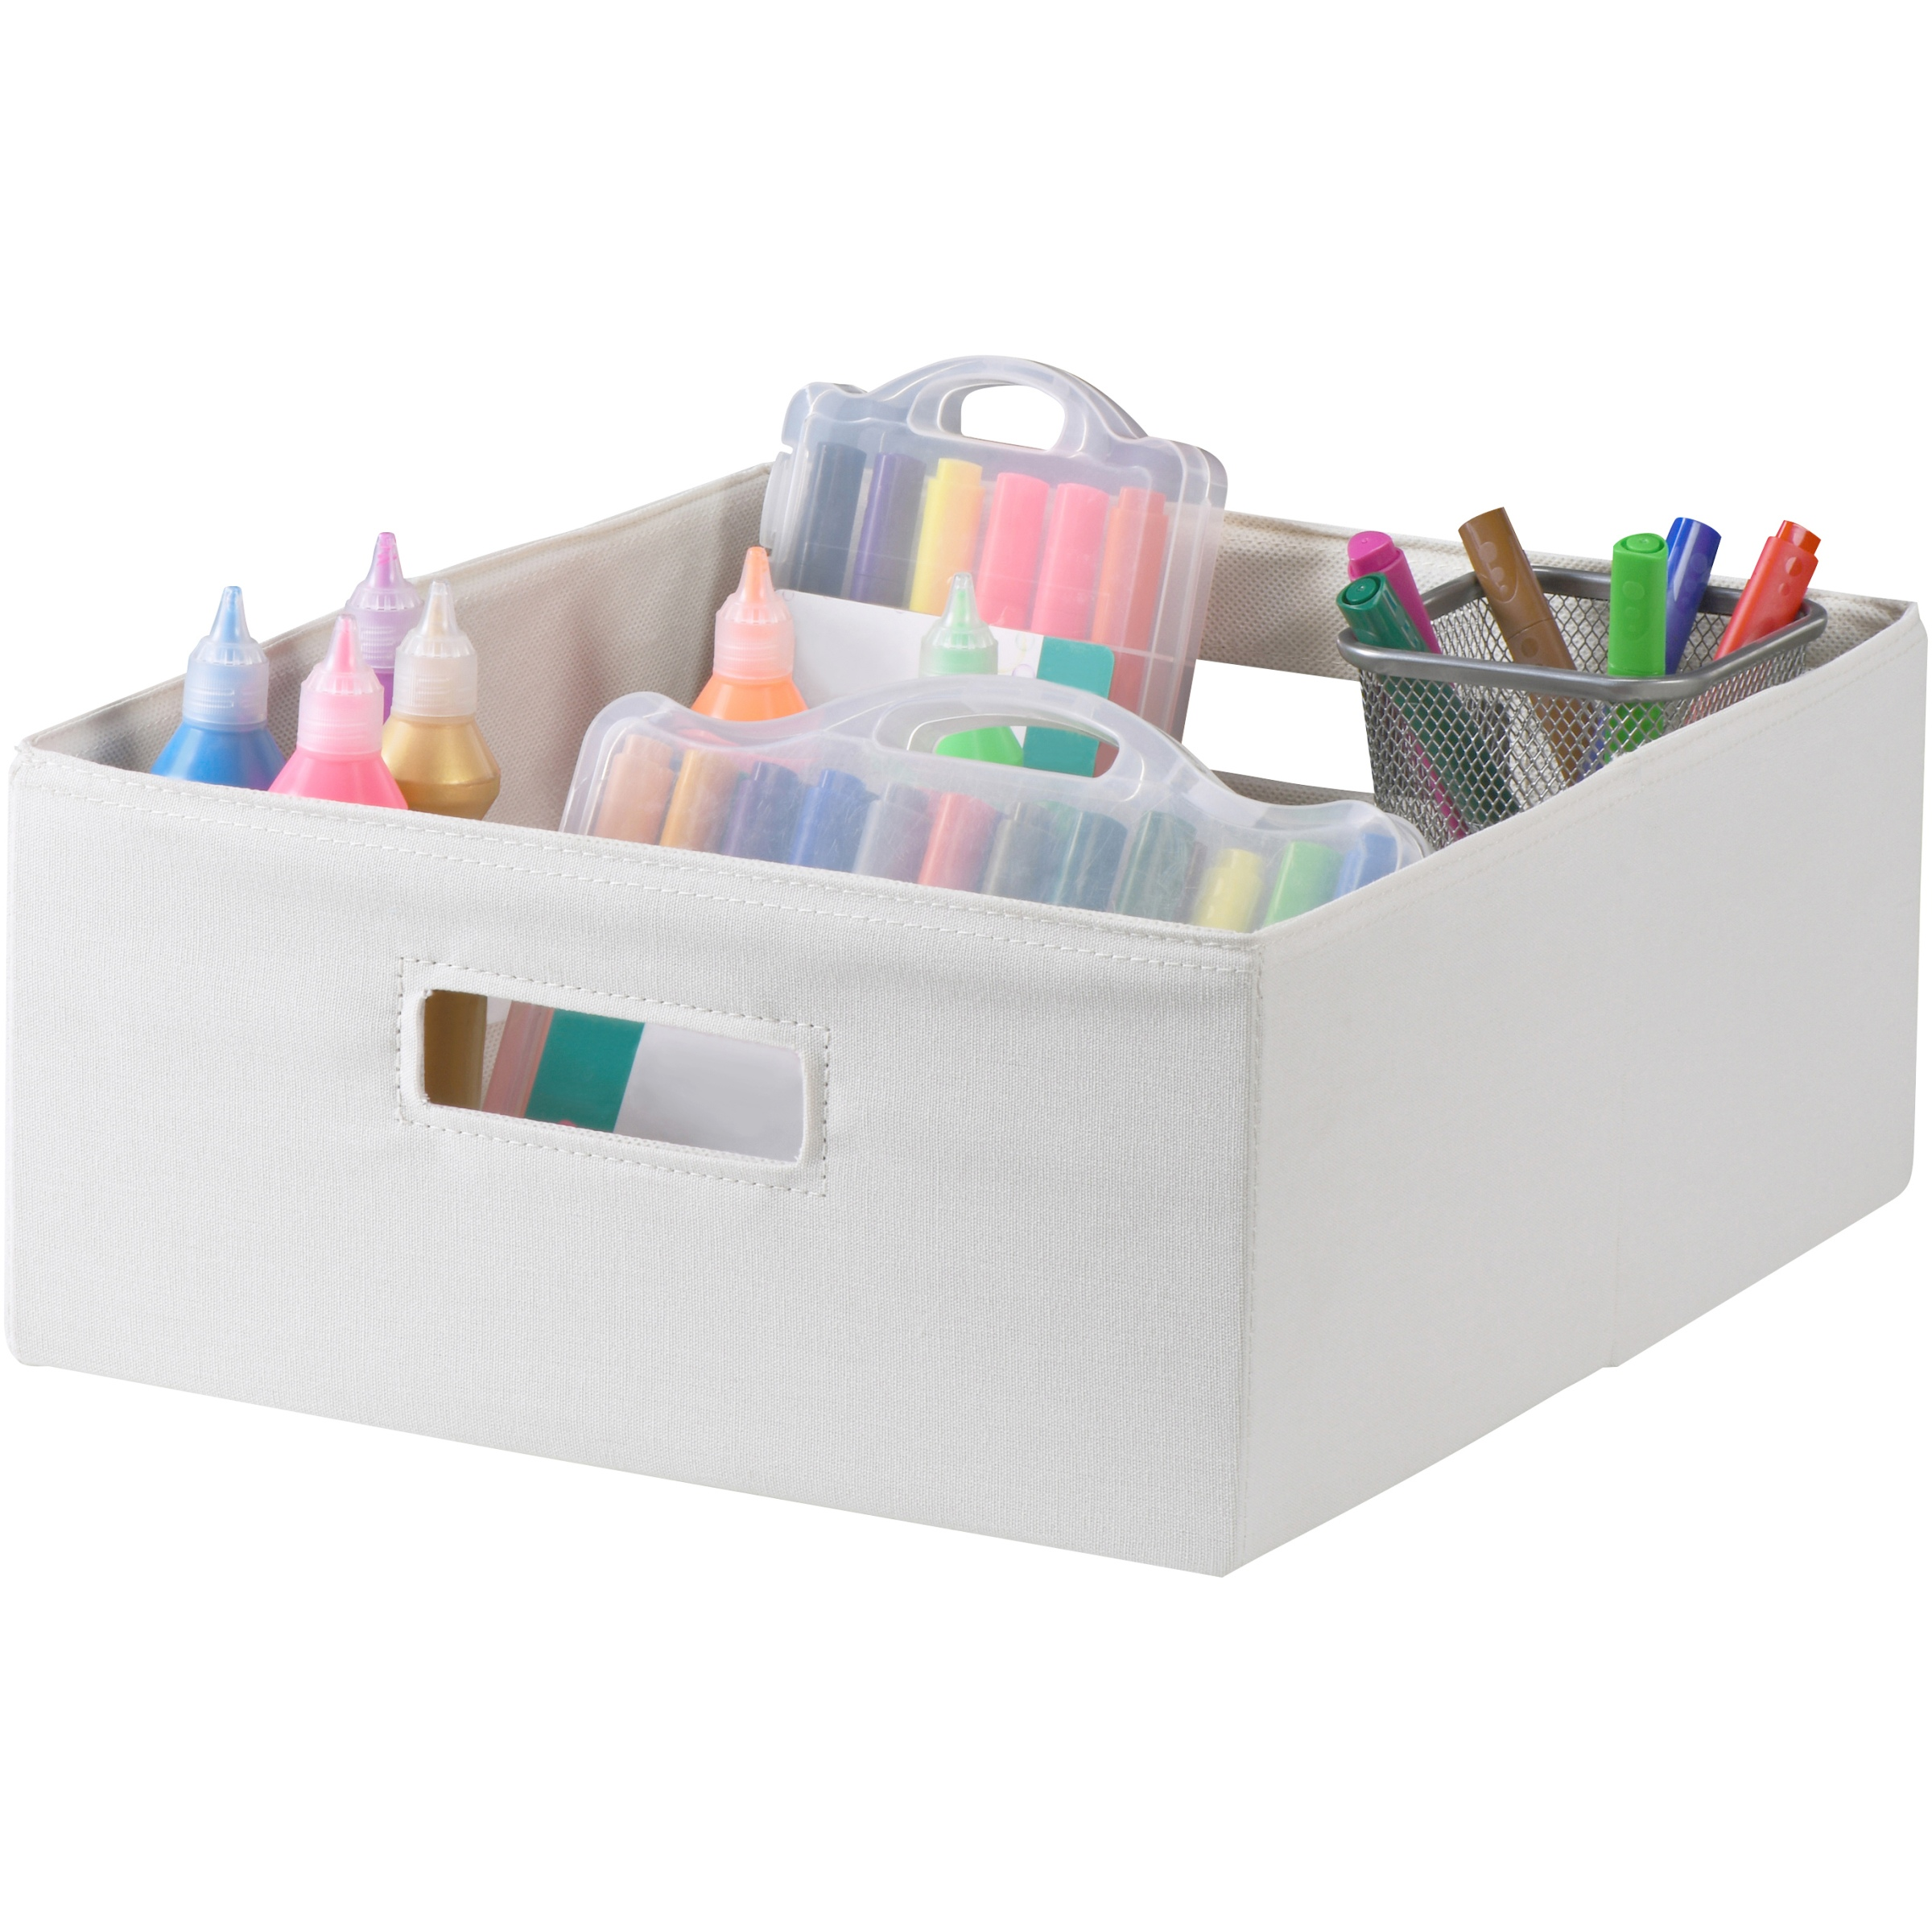 Better Homes & Gardens® Half-Sized Cream Fabric Storage Bin